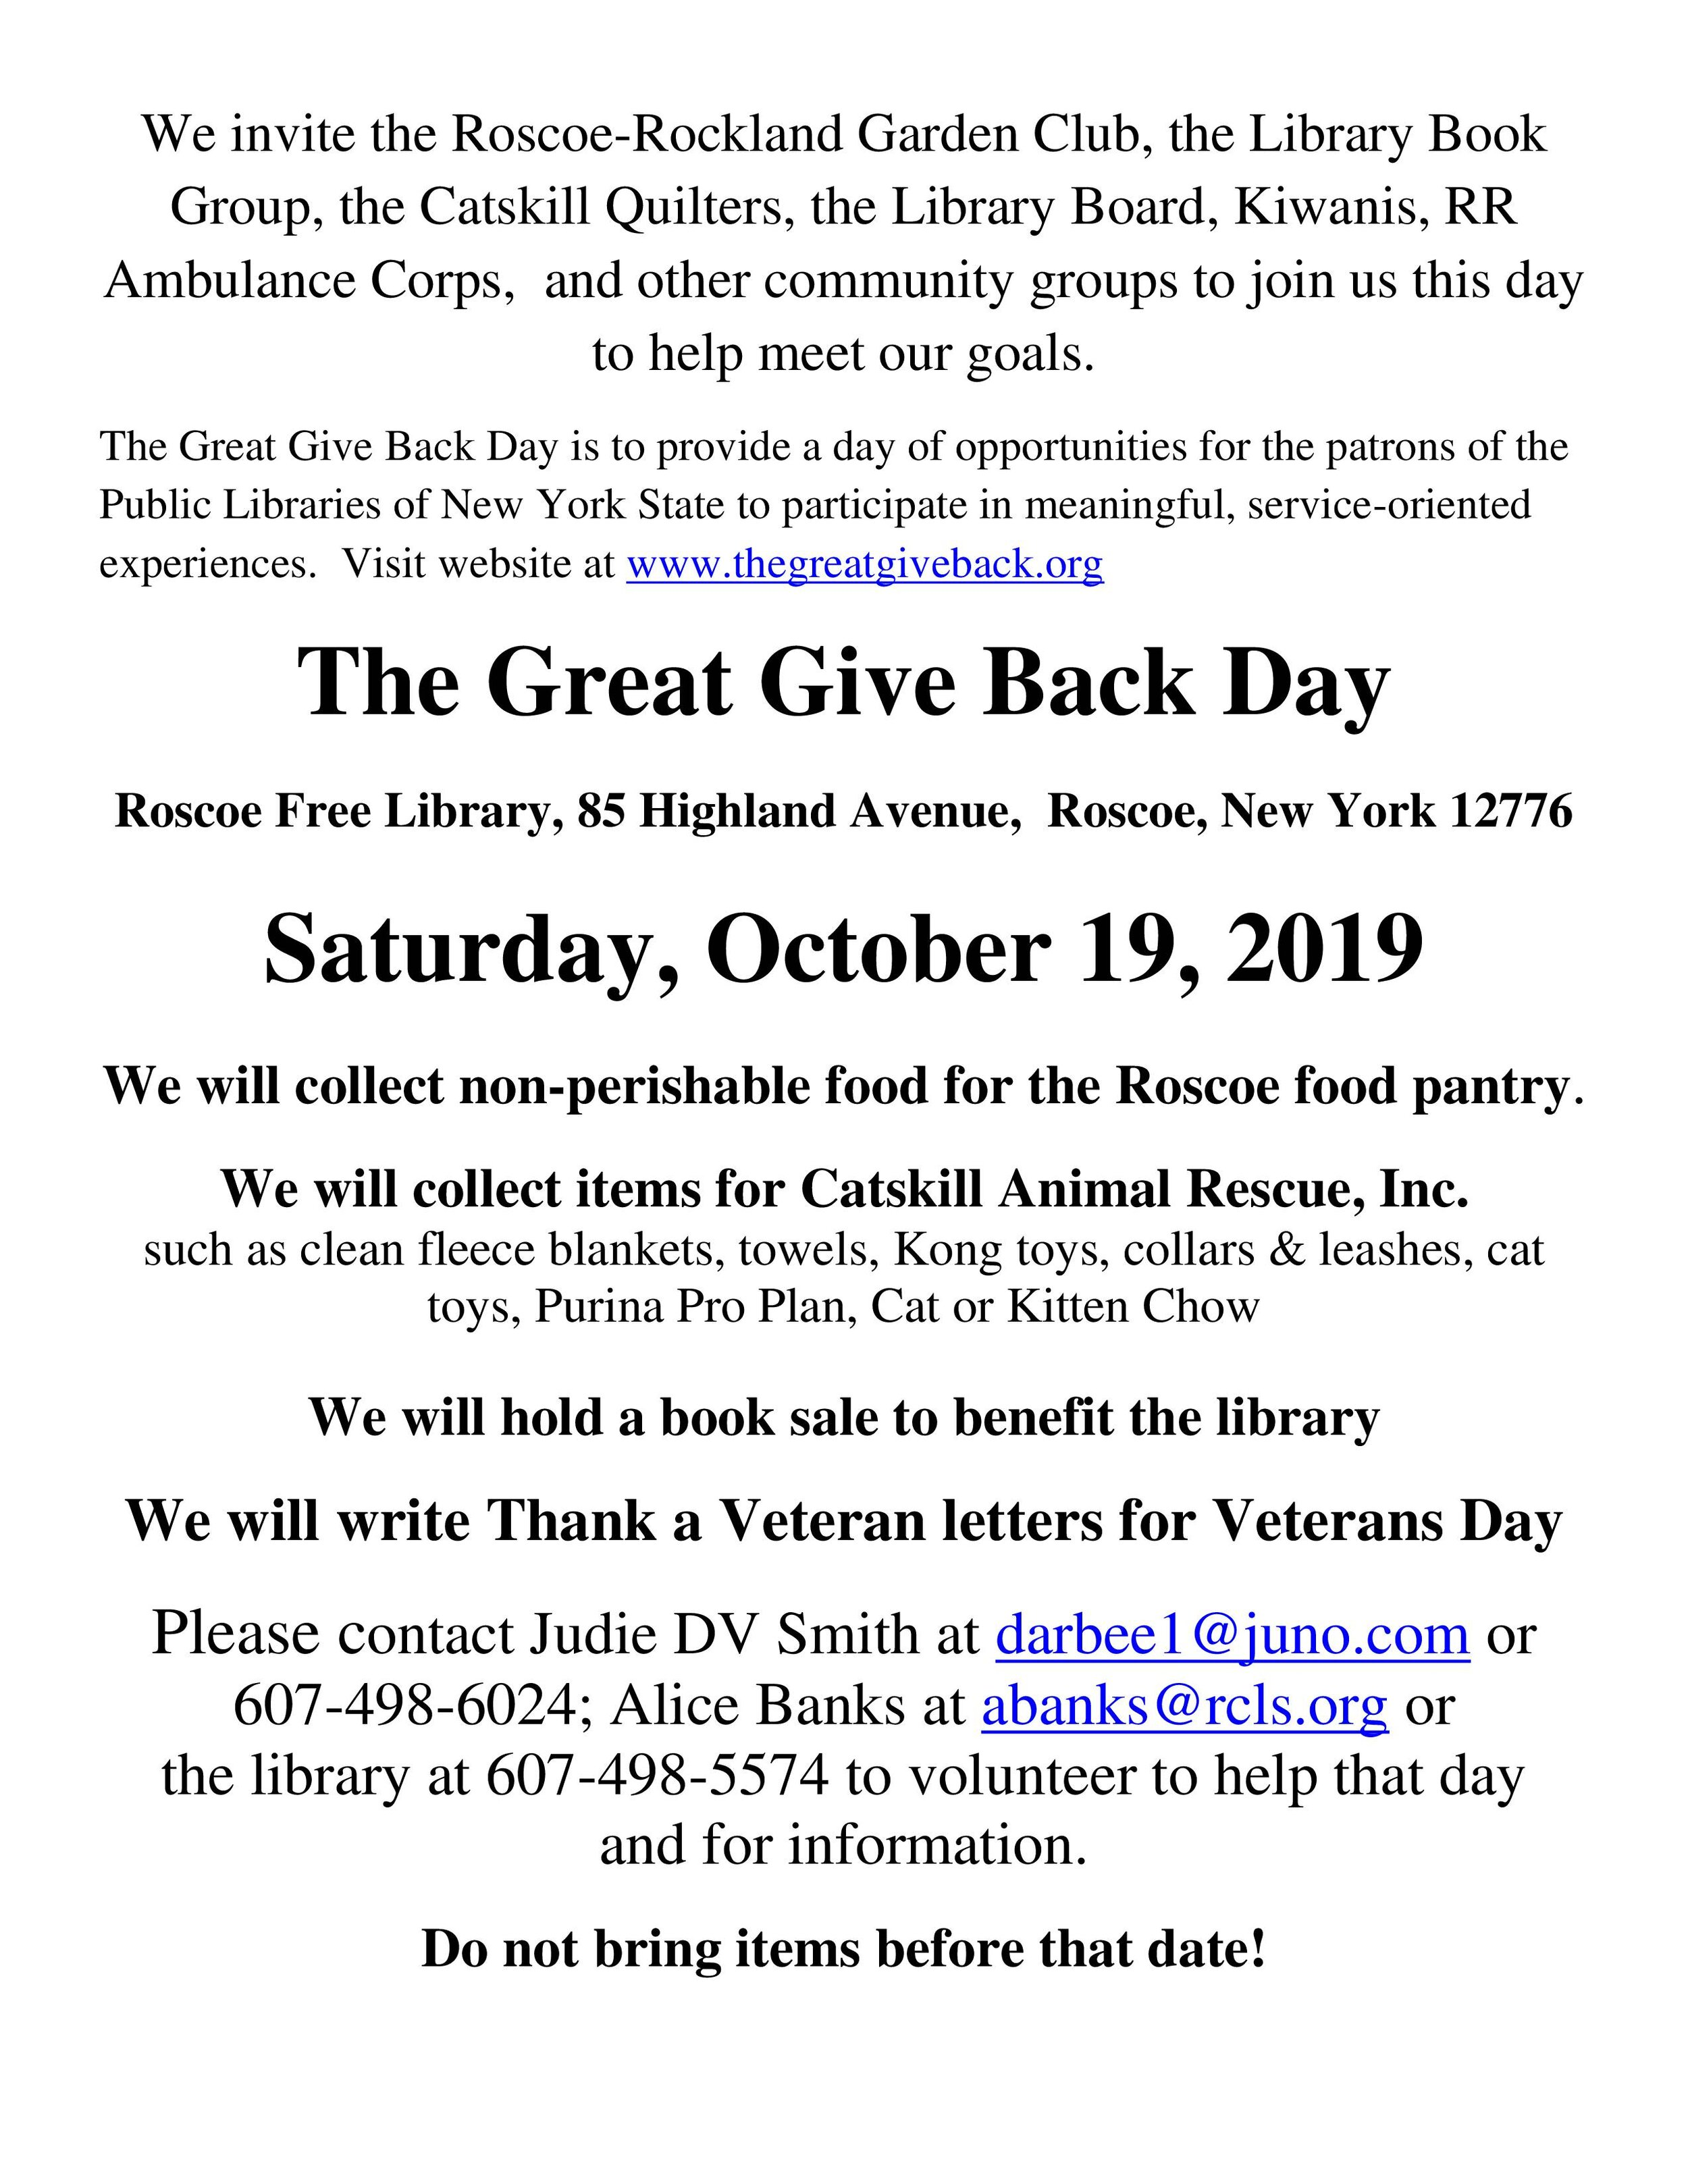 Great Give Back letter publicity to   be mailed and emailed to groups.jpg